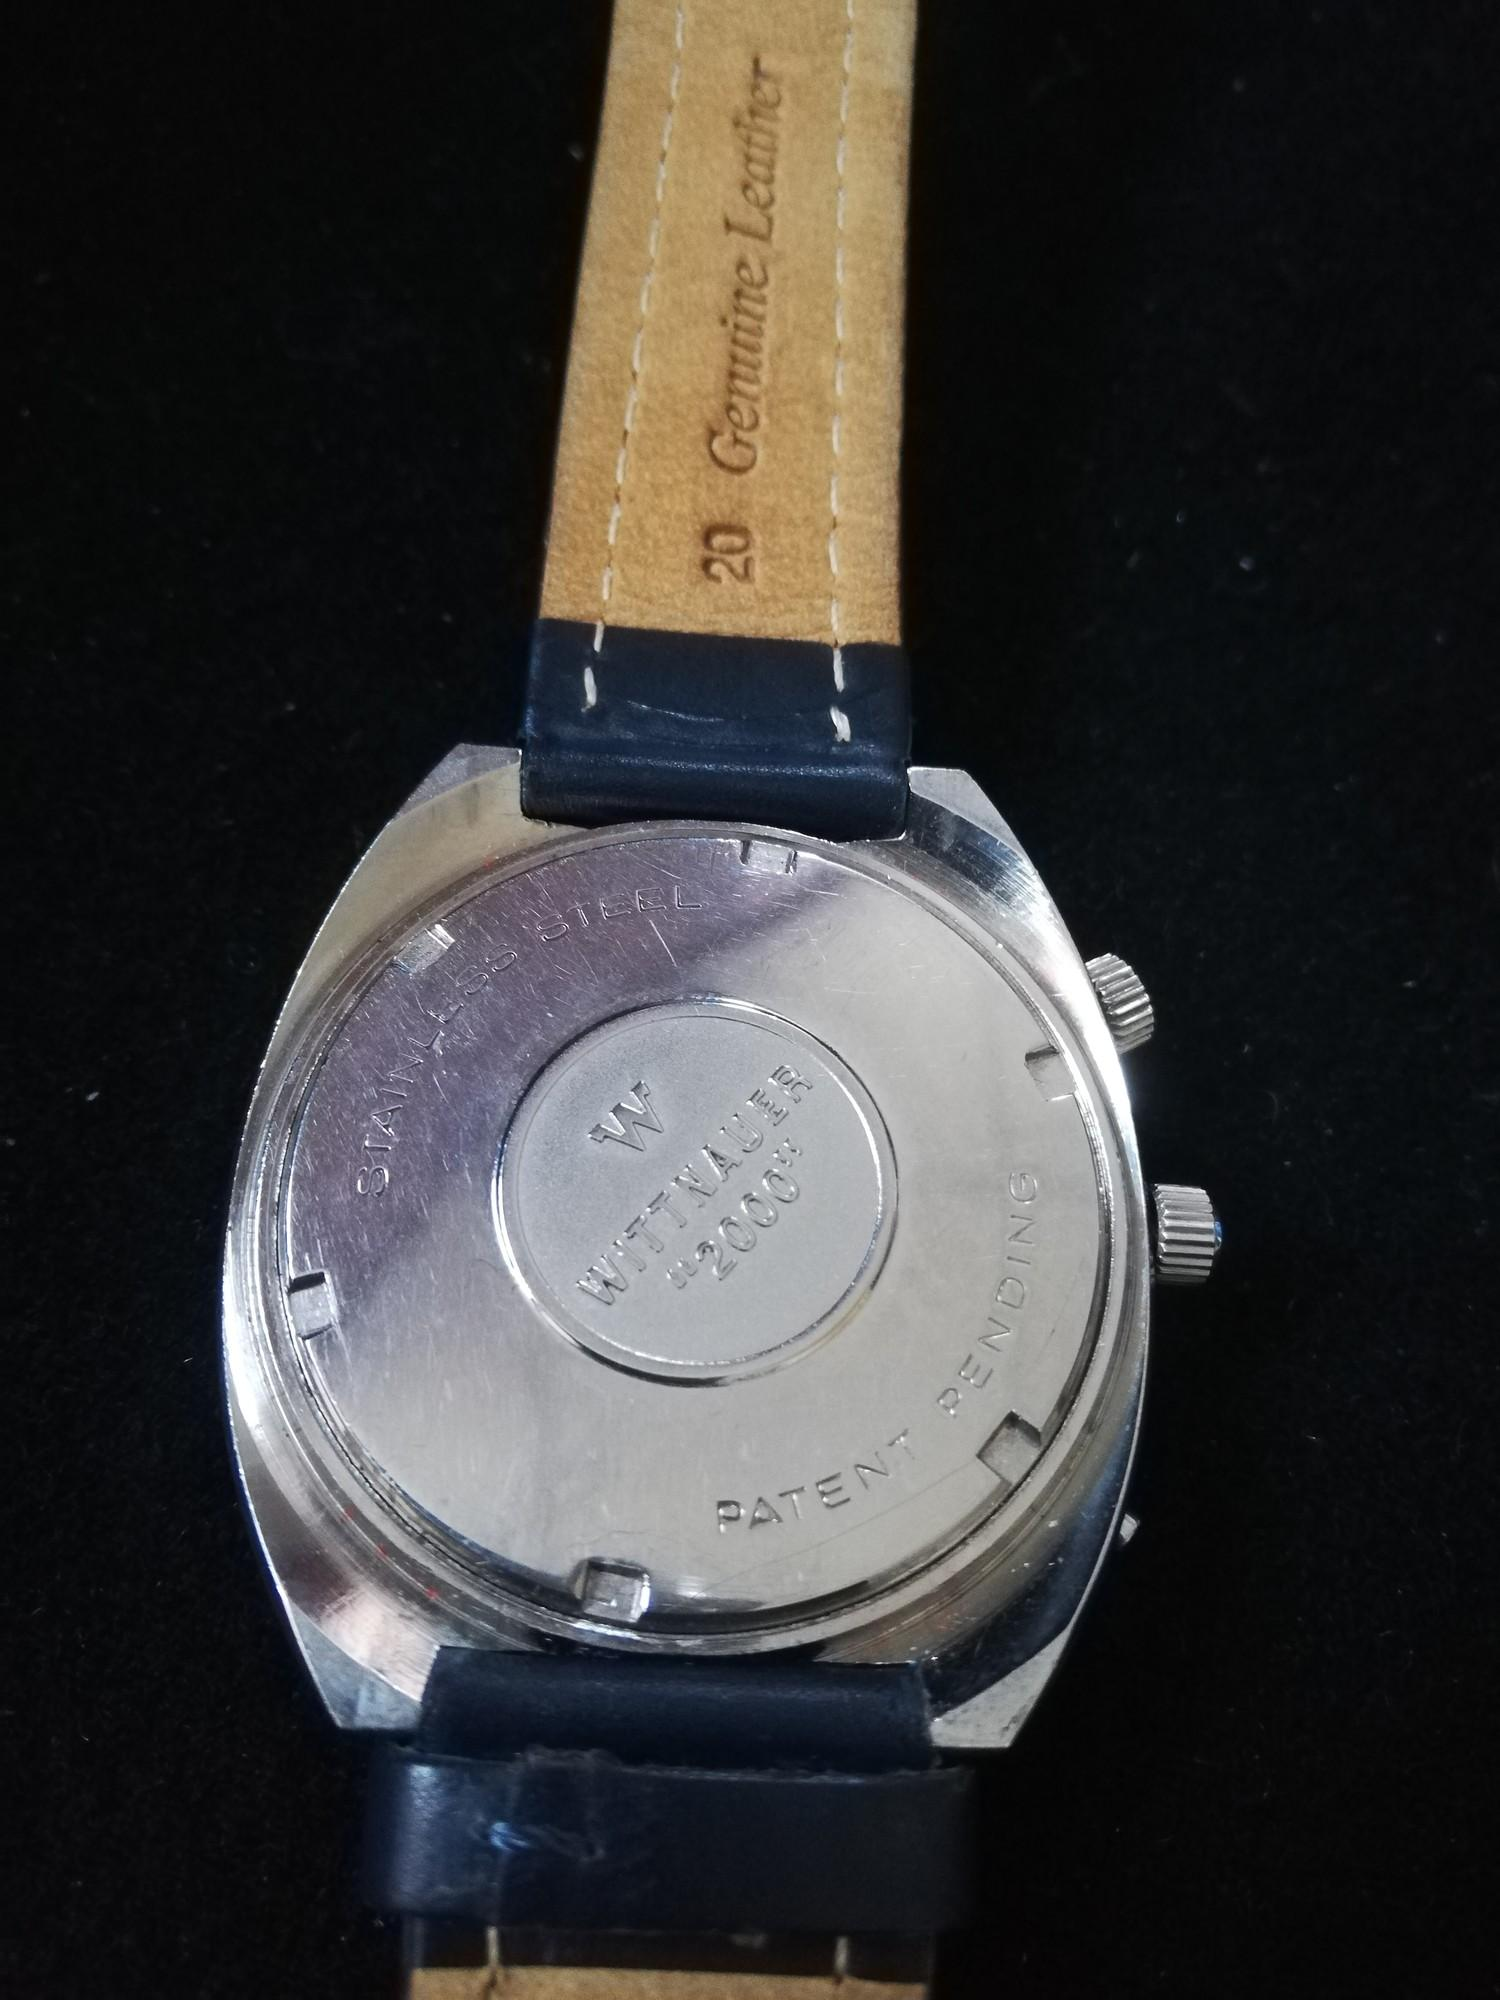 Wittnauer 2000 automatic perpetual calendar watch -stainless steel case & leather strap - Image 2 of 2